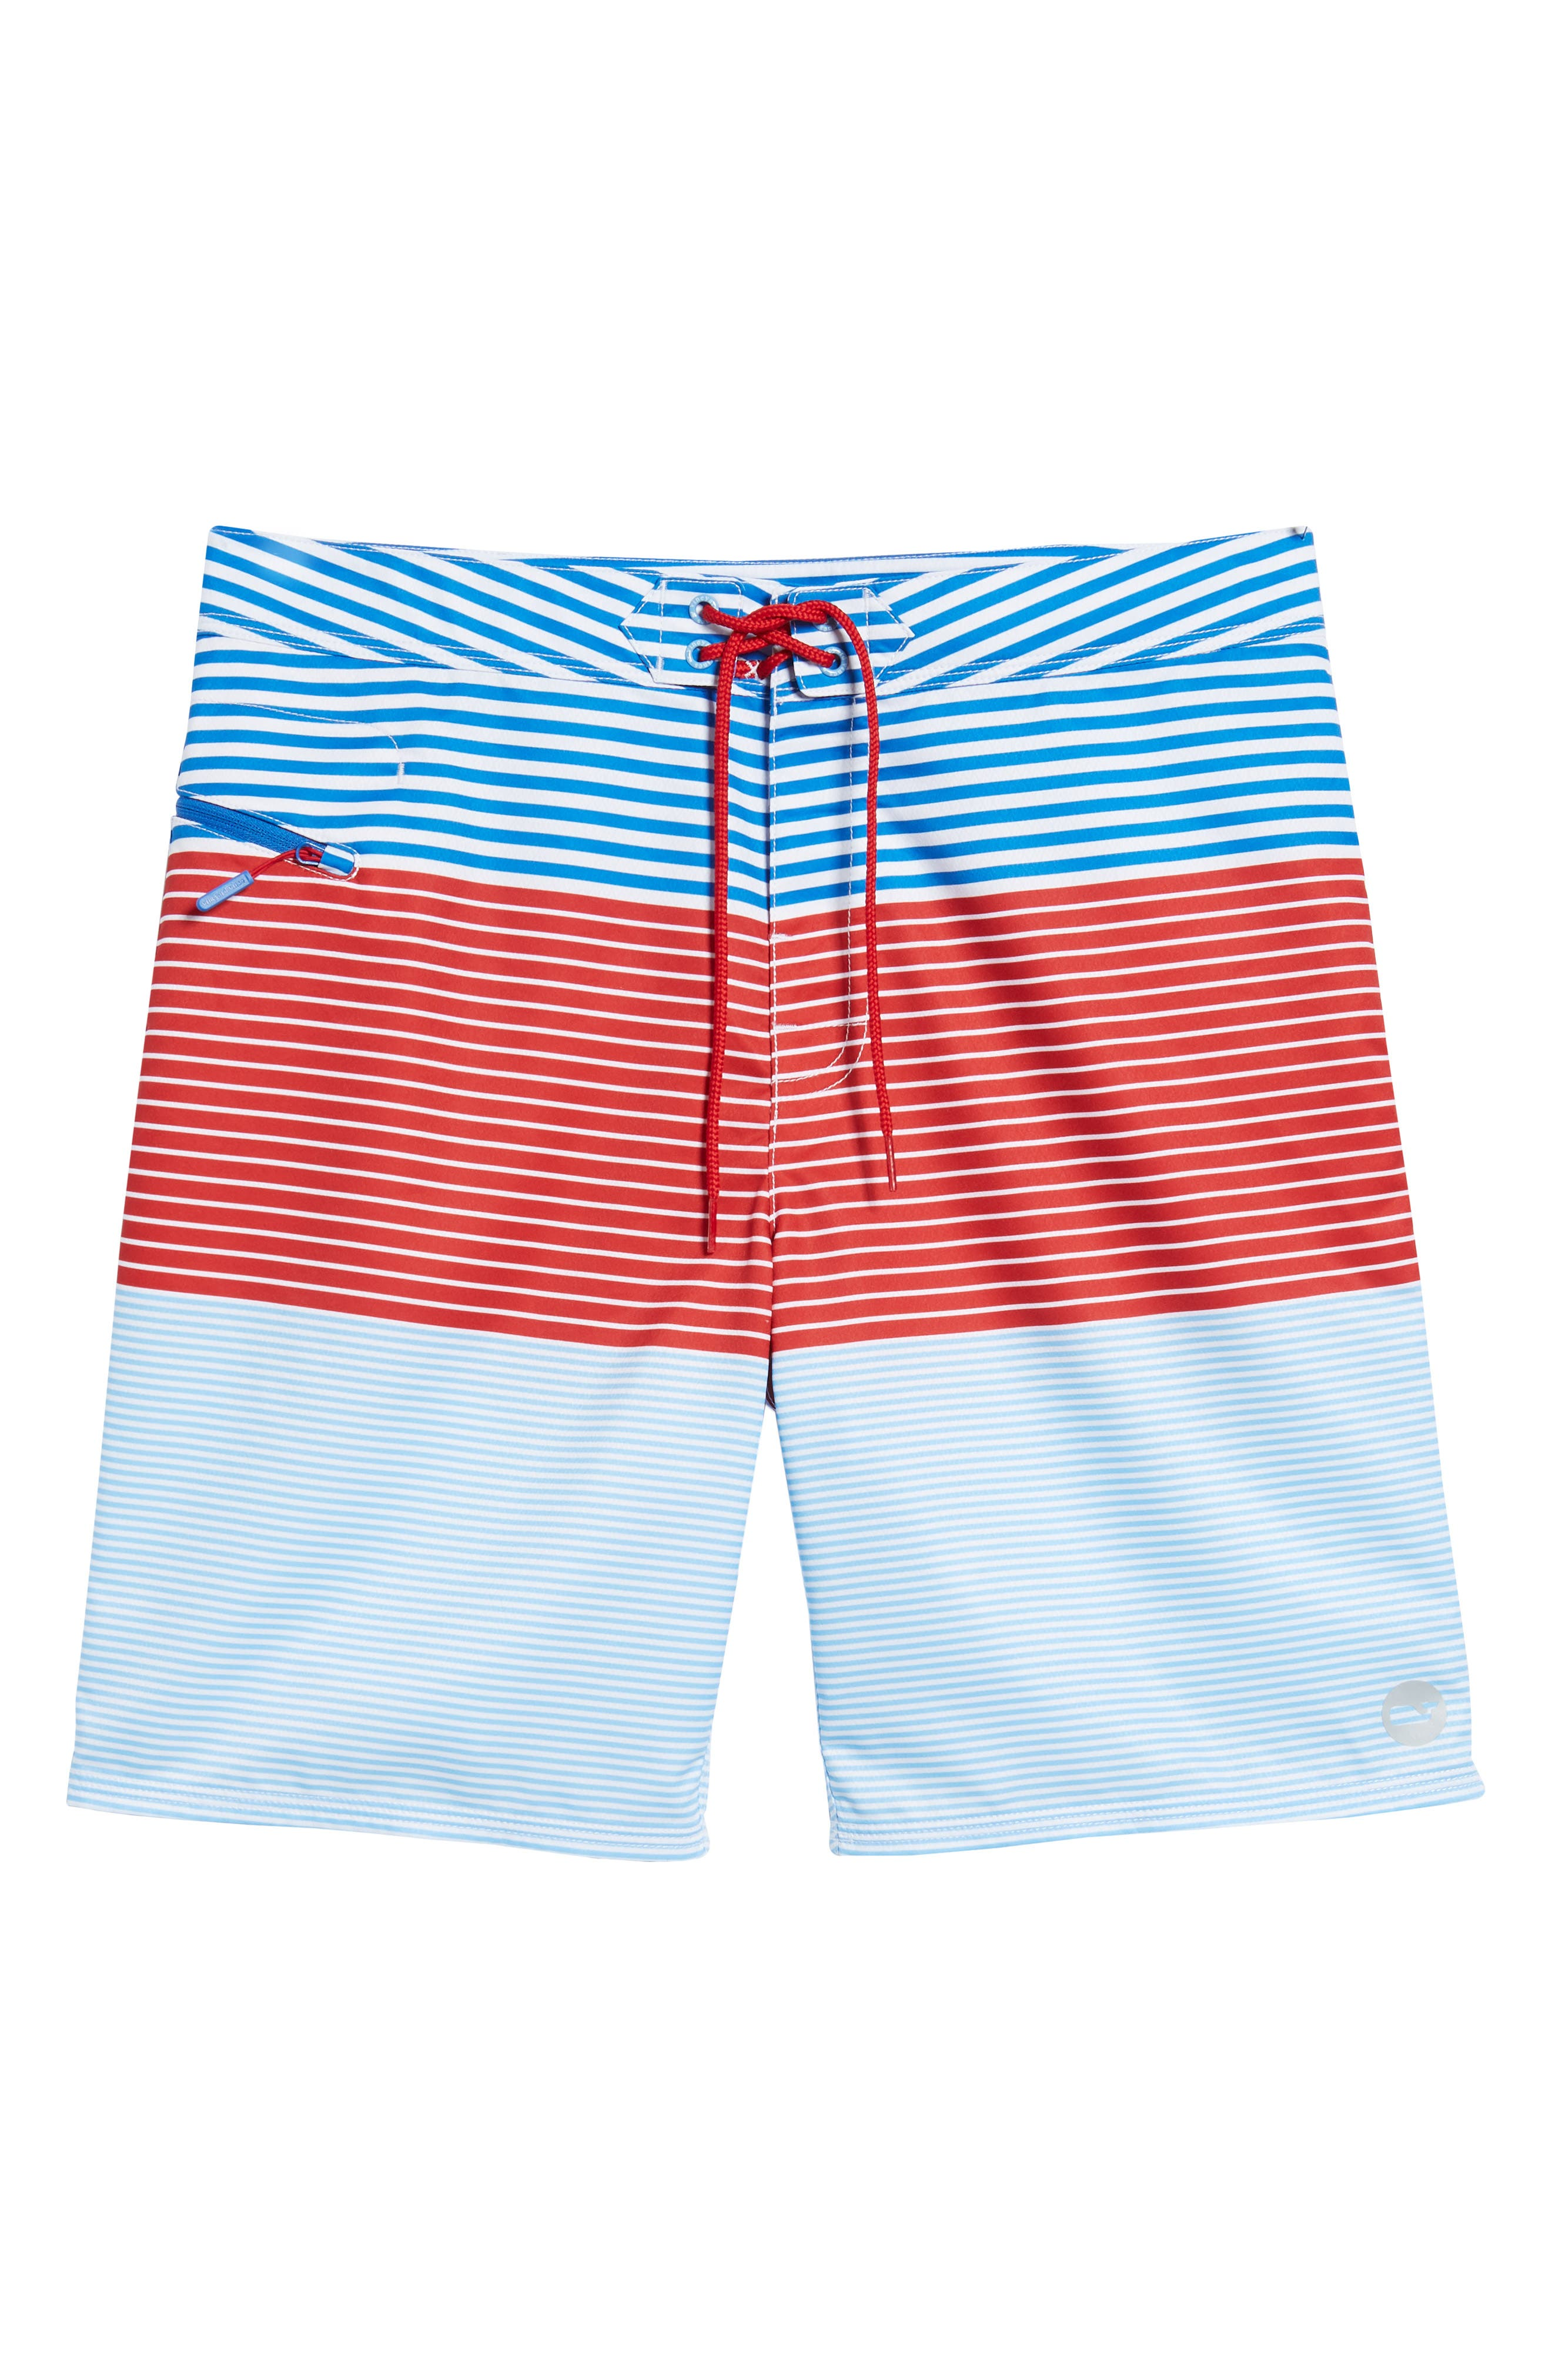 Whale Harbor Stripe Board Shorts,                             Alternate thumbnail 6, color,                             427